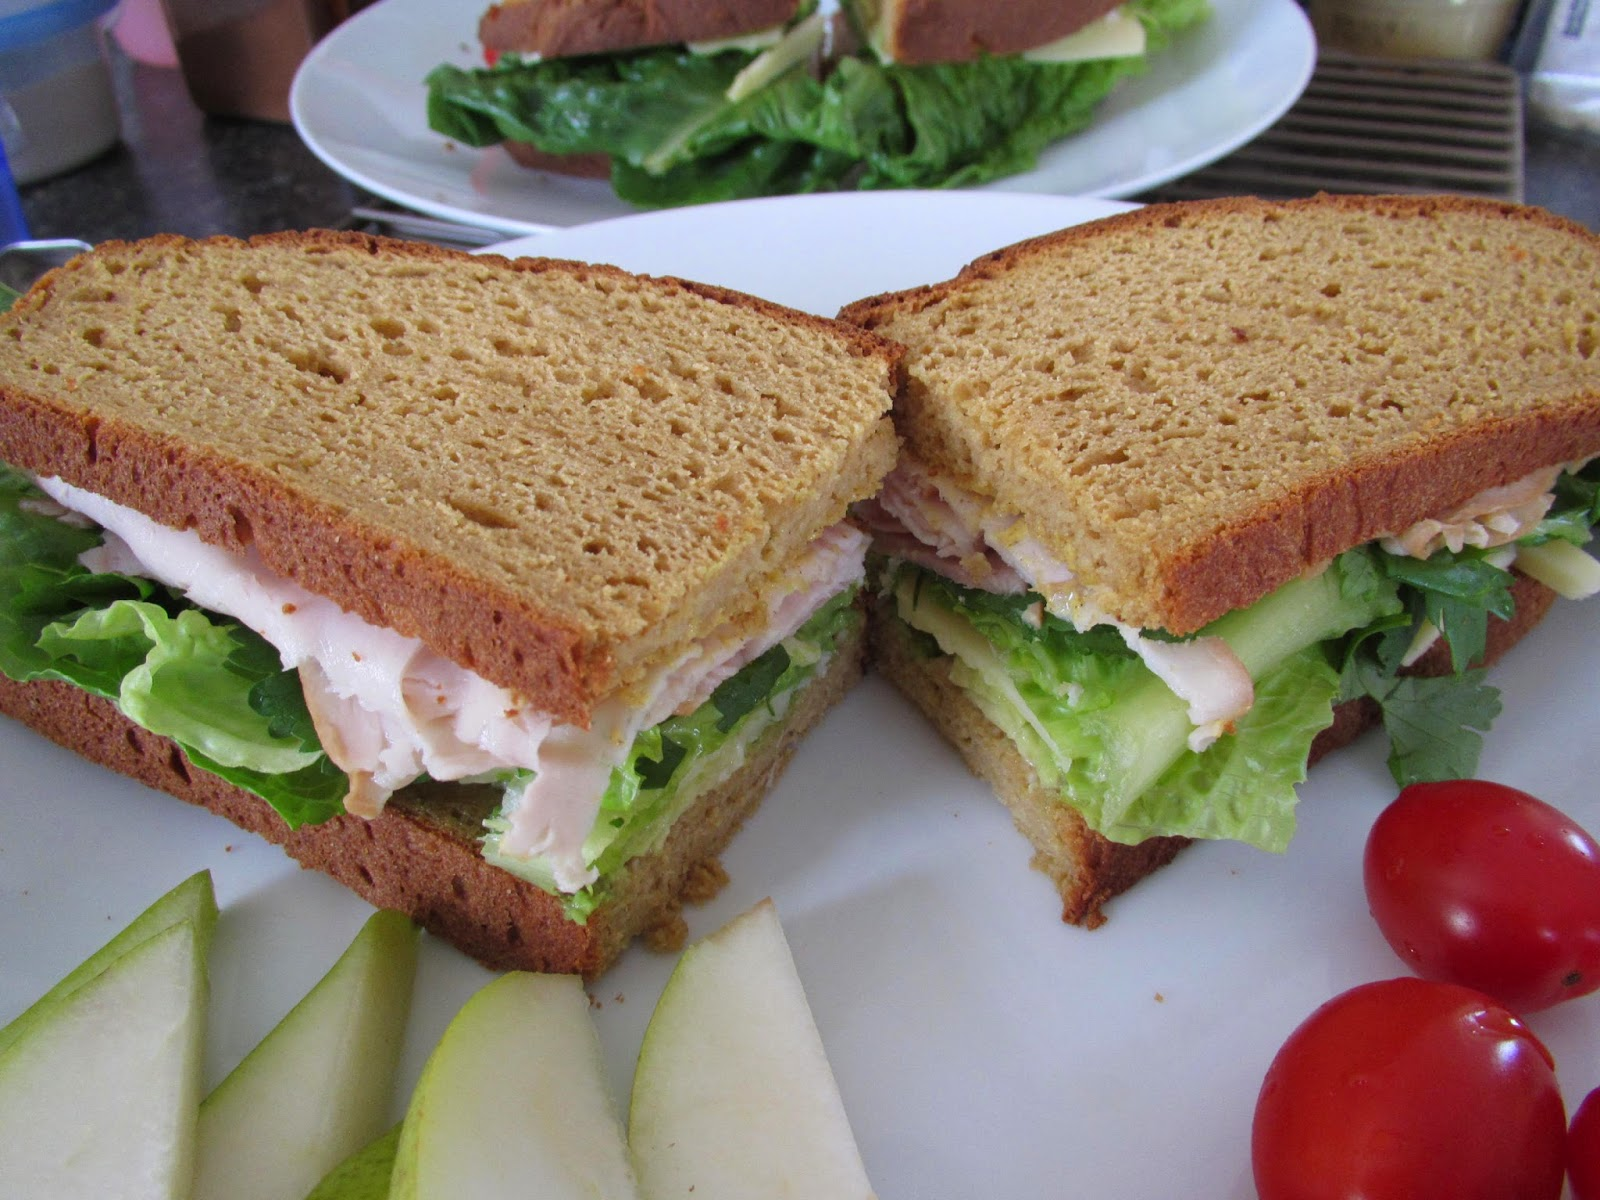 Gluten Free Rustic Brown Bread Sandwiches!